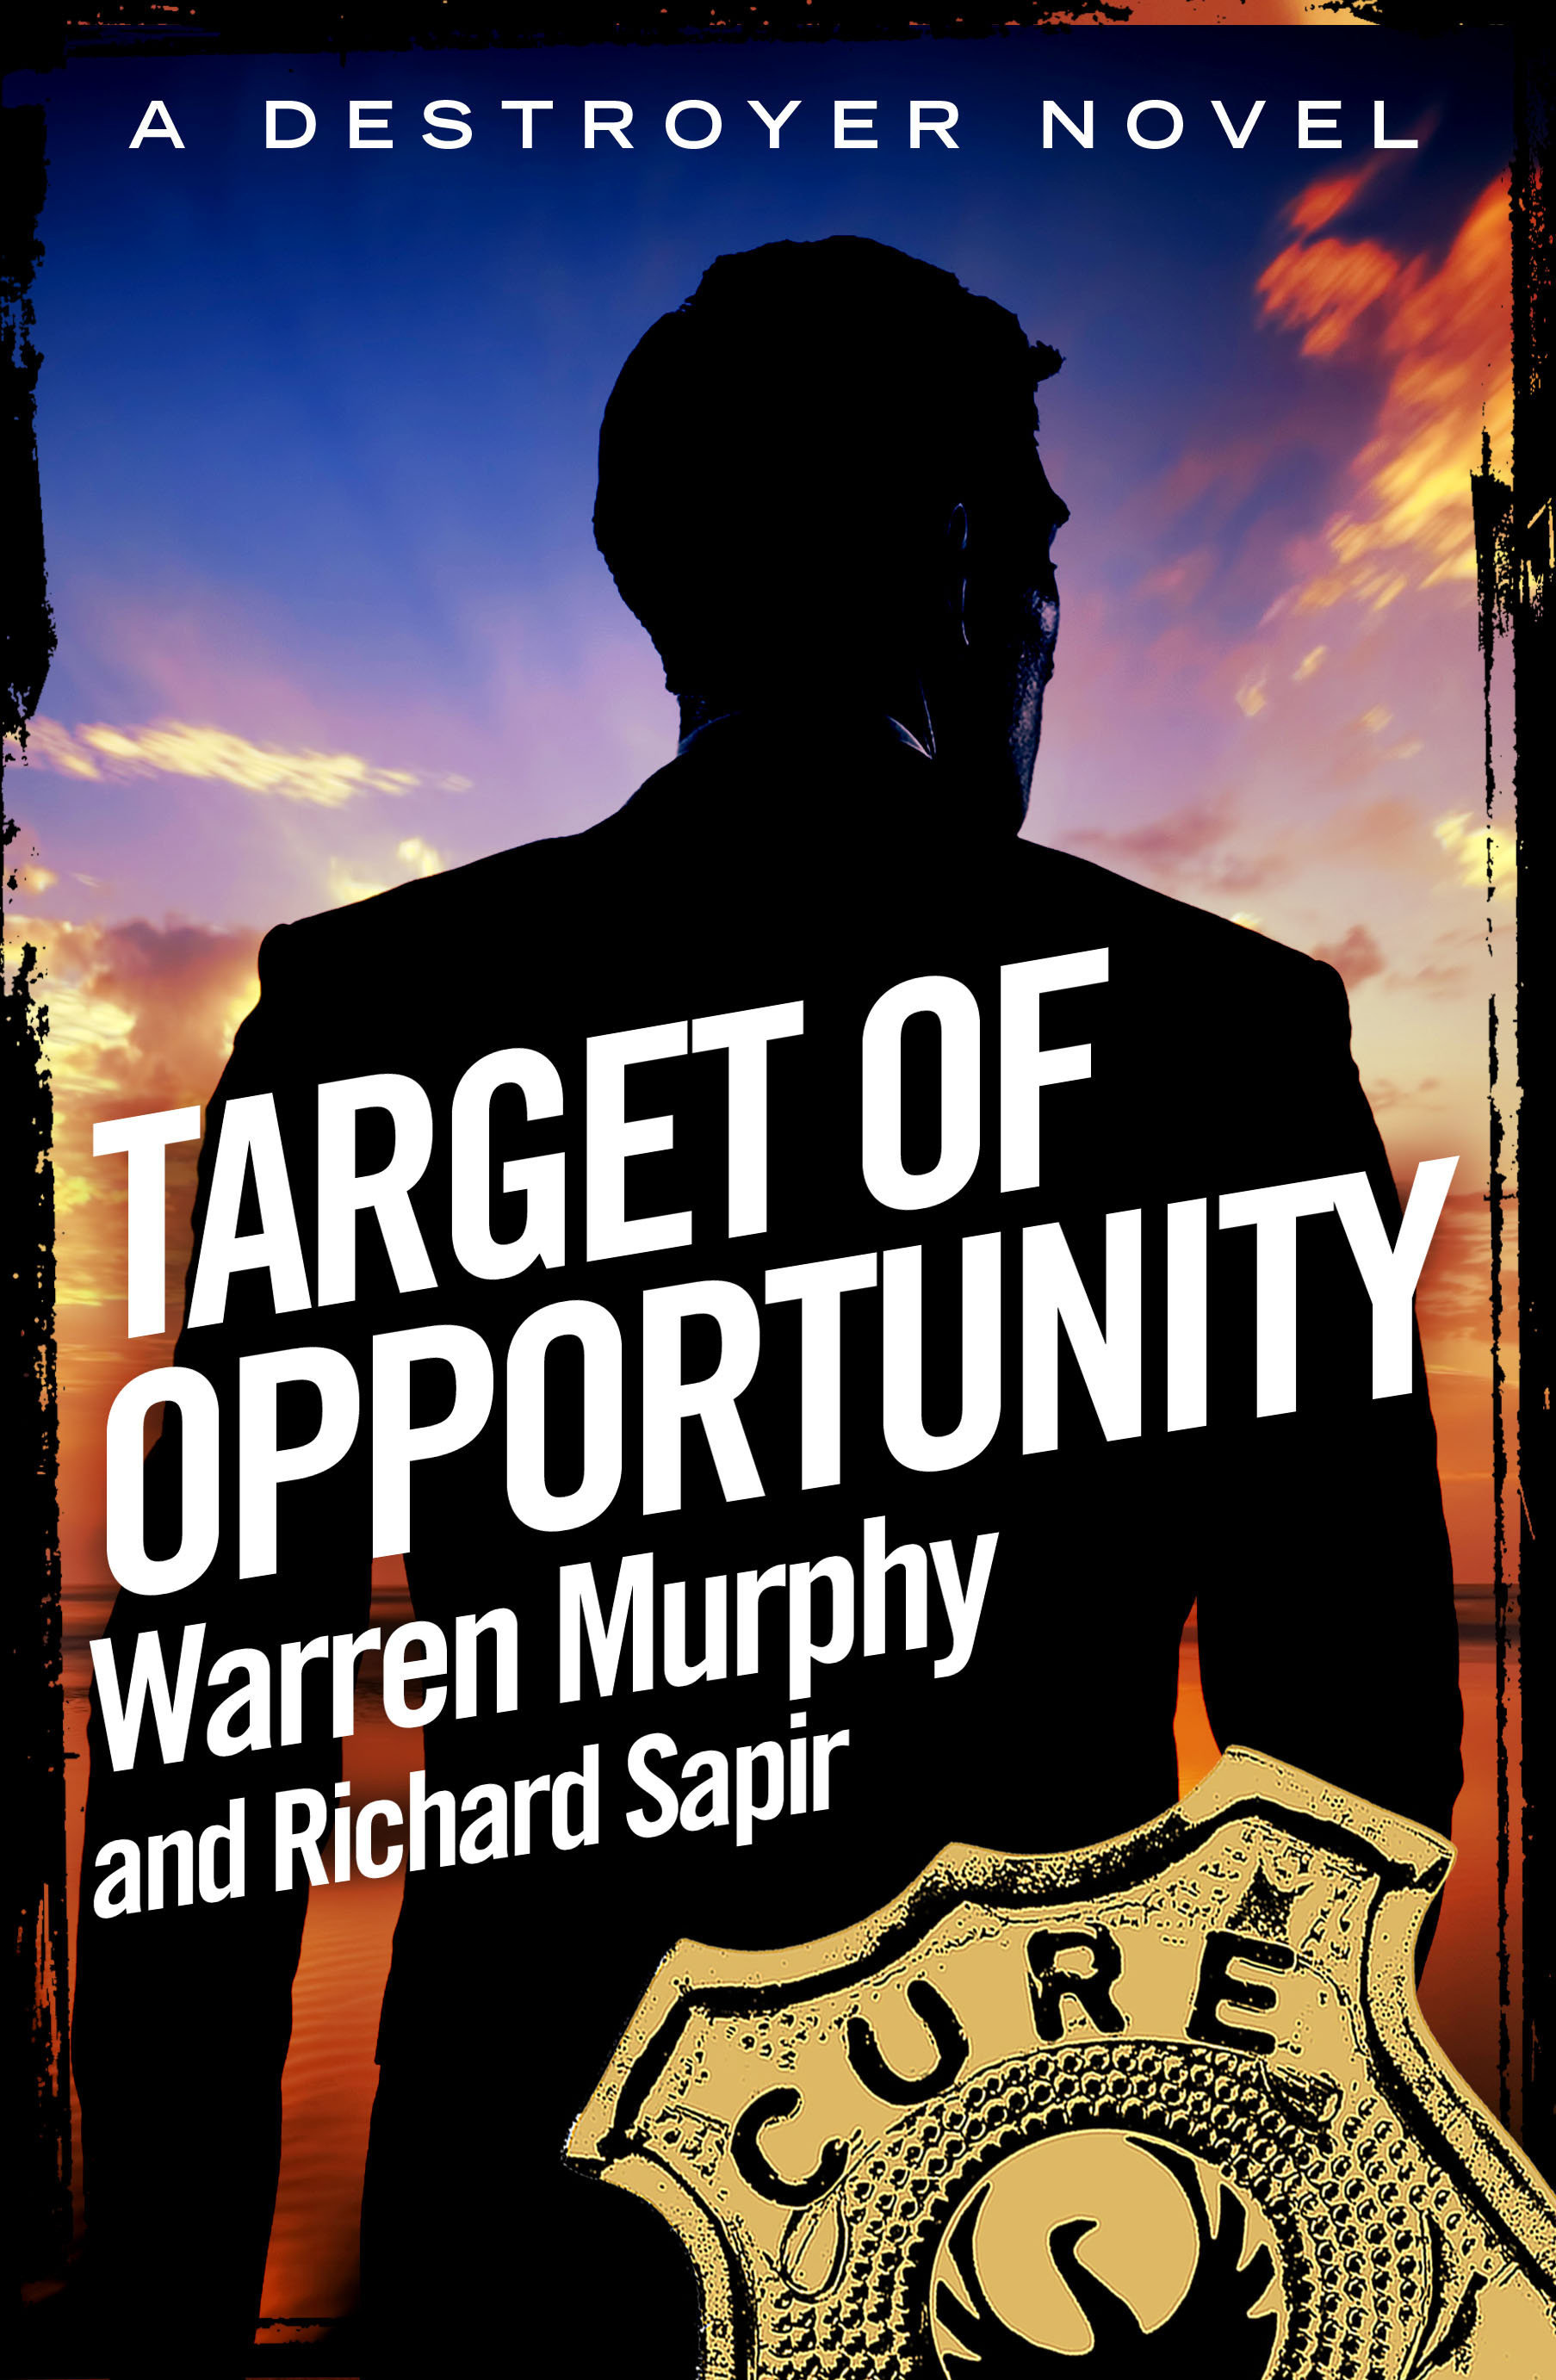 ... Target of Opportunity: Number 98 in Series · Download Image